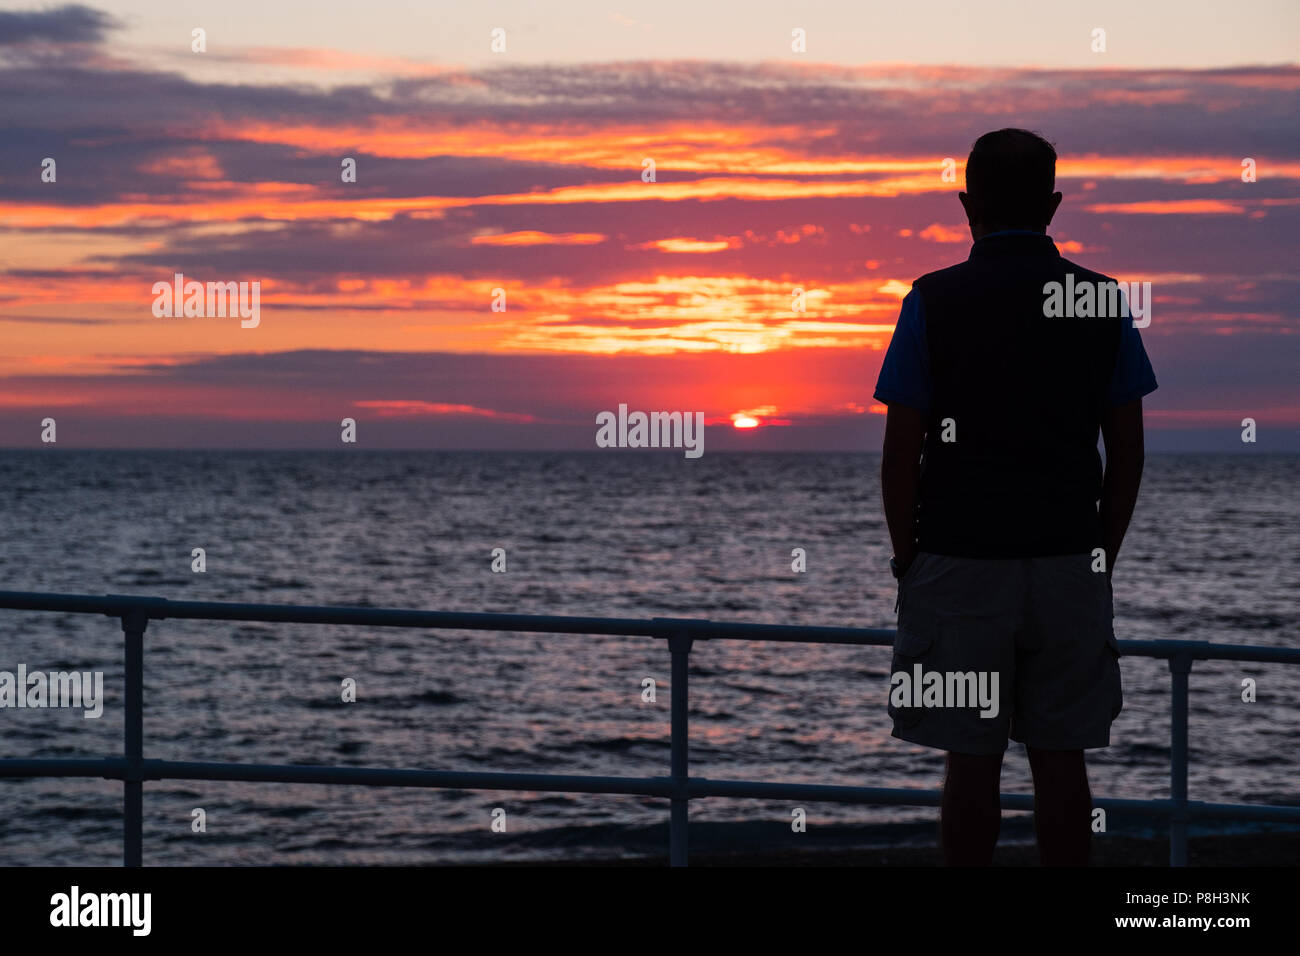 Aberystwyth Wales UK, 11 July 2018. UK Weather:  A man watches as the sun sets on yet another England football World Cup dream, with the team being beaten 2-1 by Croatia after extra time in the semi final. The years of hurt continue for a side who last won the tropy in 1966, and have not been further than the semi final since  then  photo © Keith Morris / Alamy Live News Stock Photo